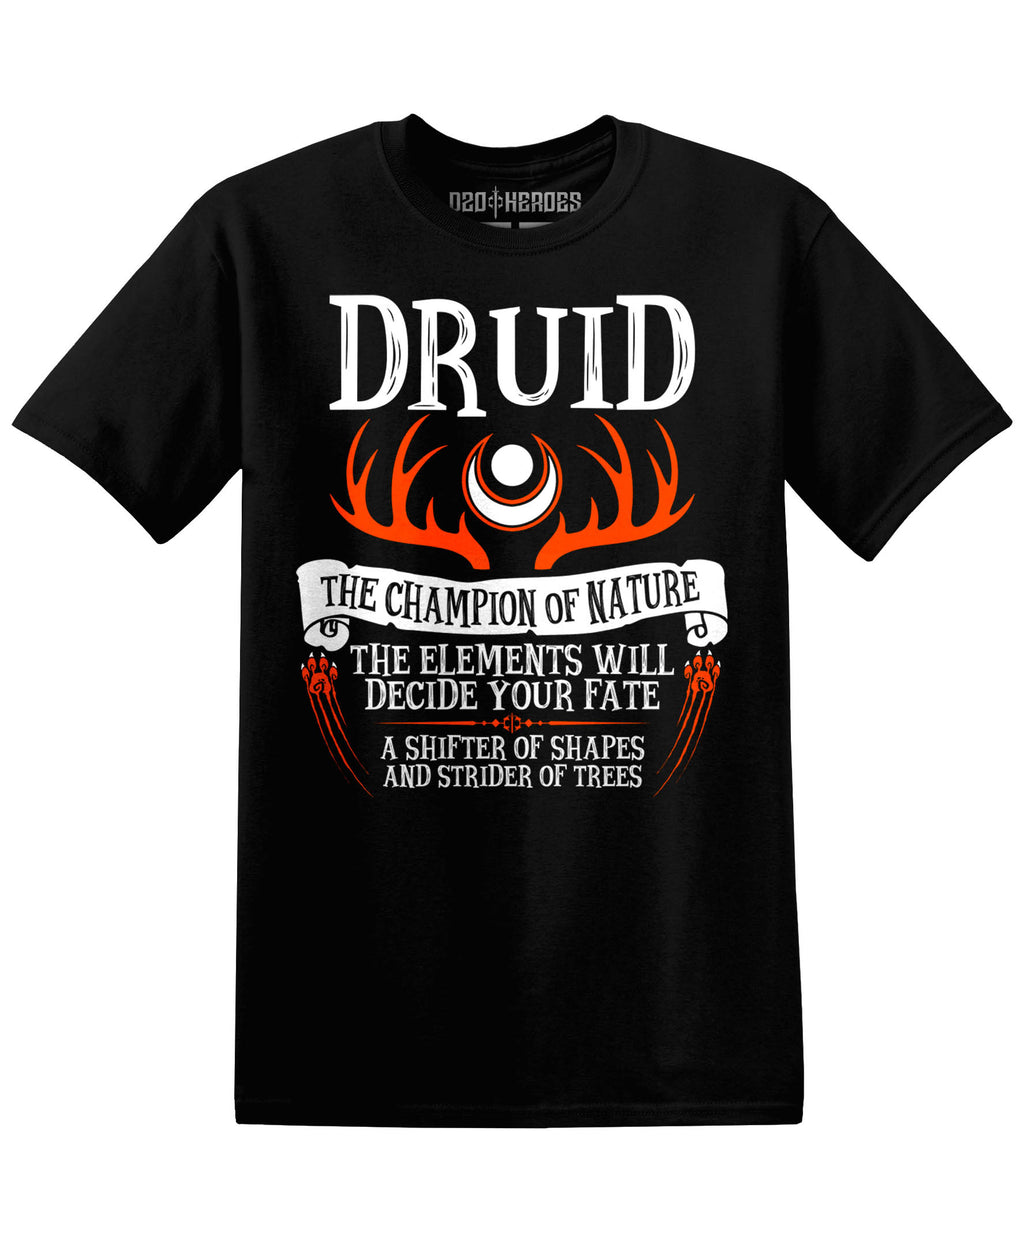 Druid : The Champion of Nature - T-Shirt - D20 Heroes / Dungeons and Dragons and Fantasy Clothing and Merchandise